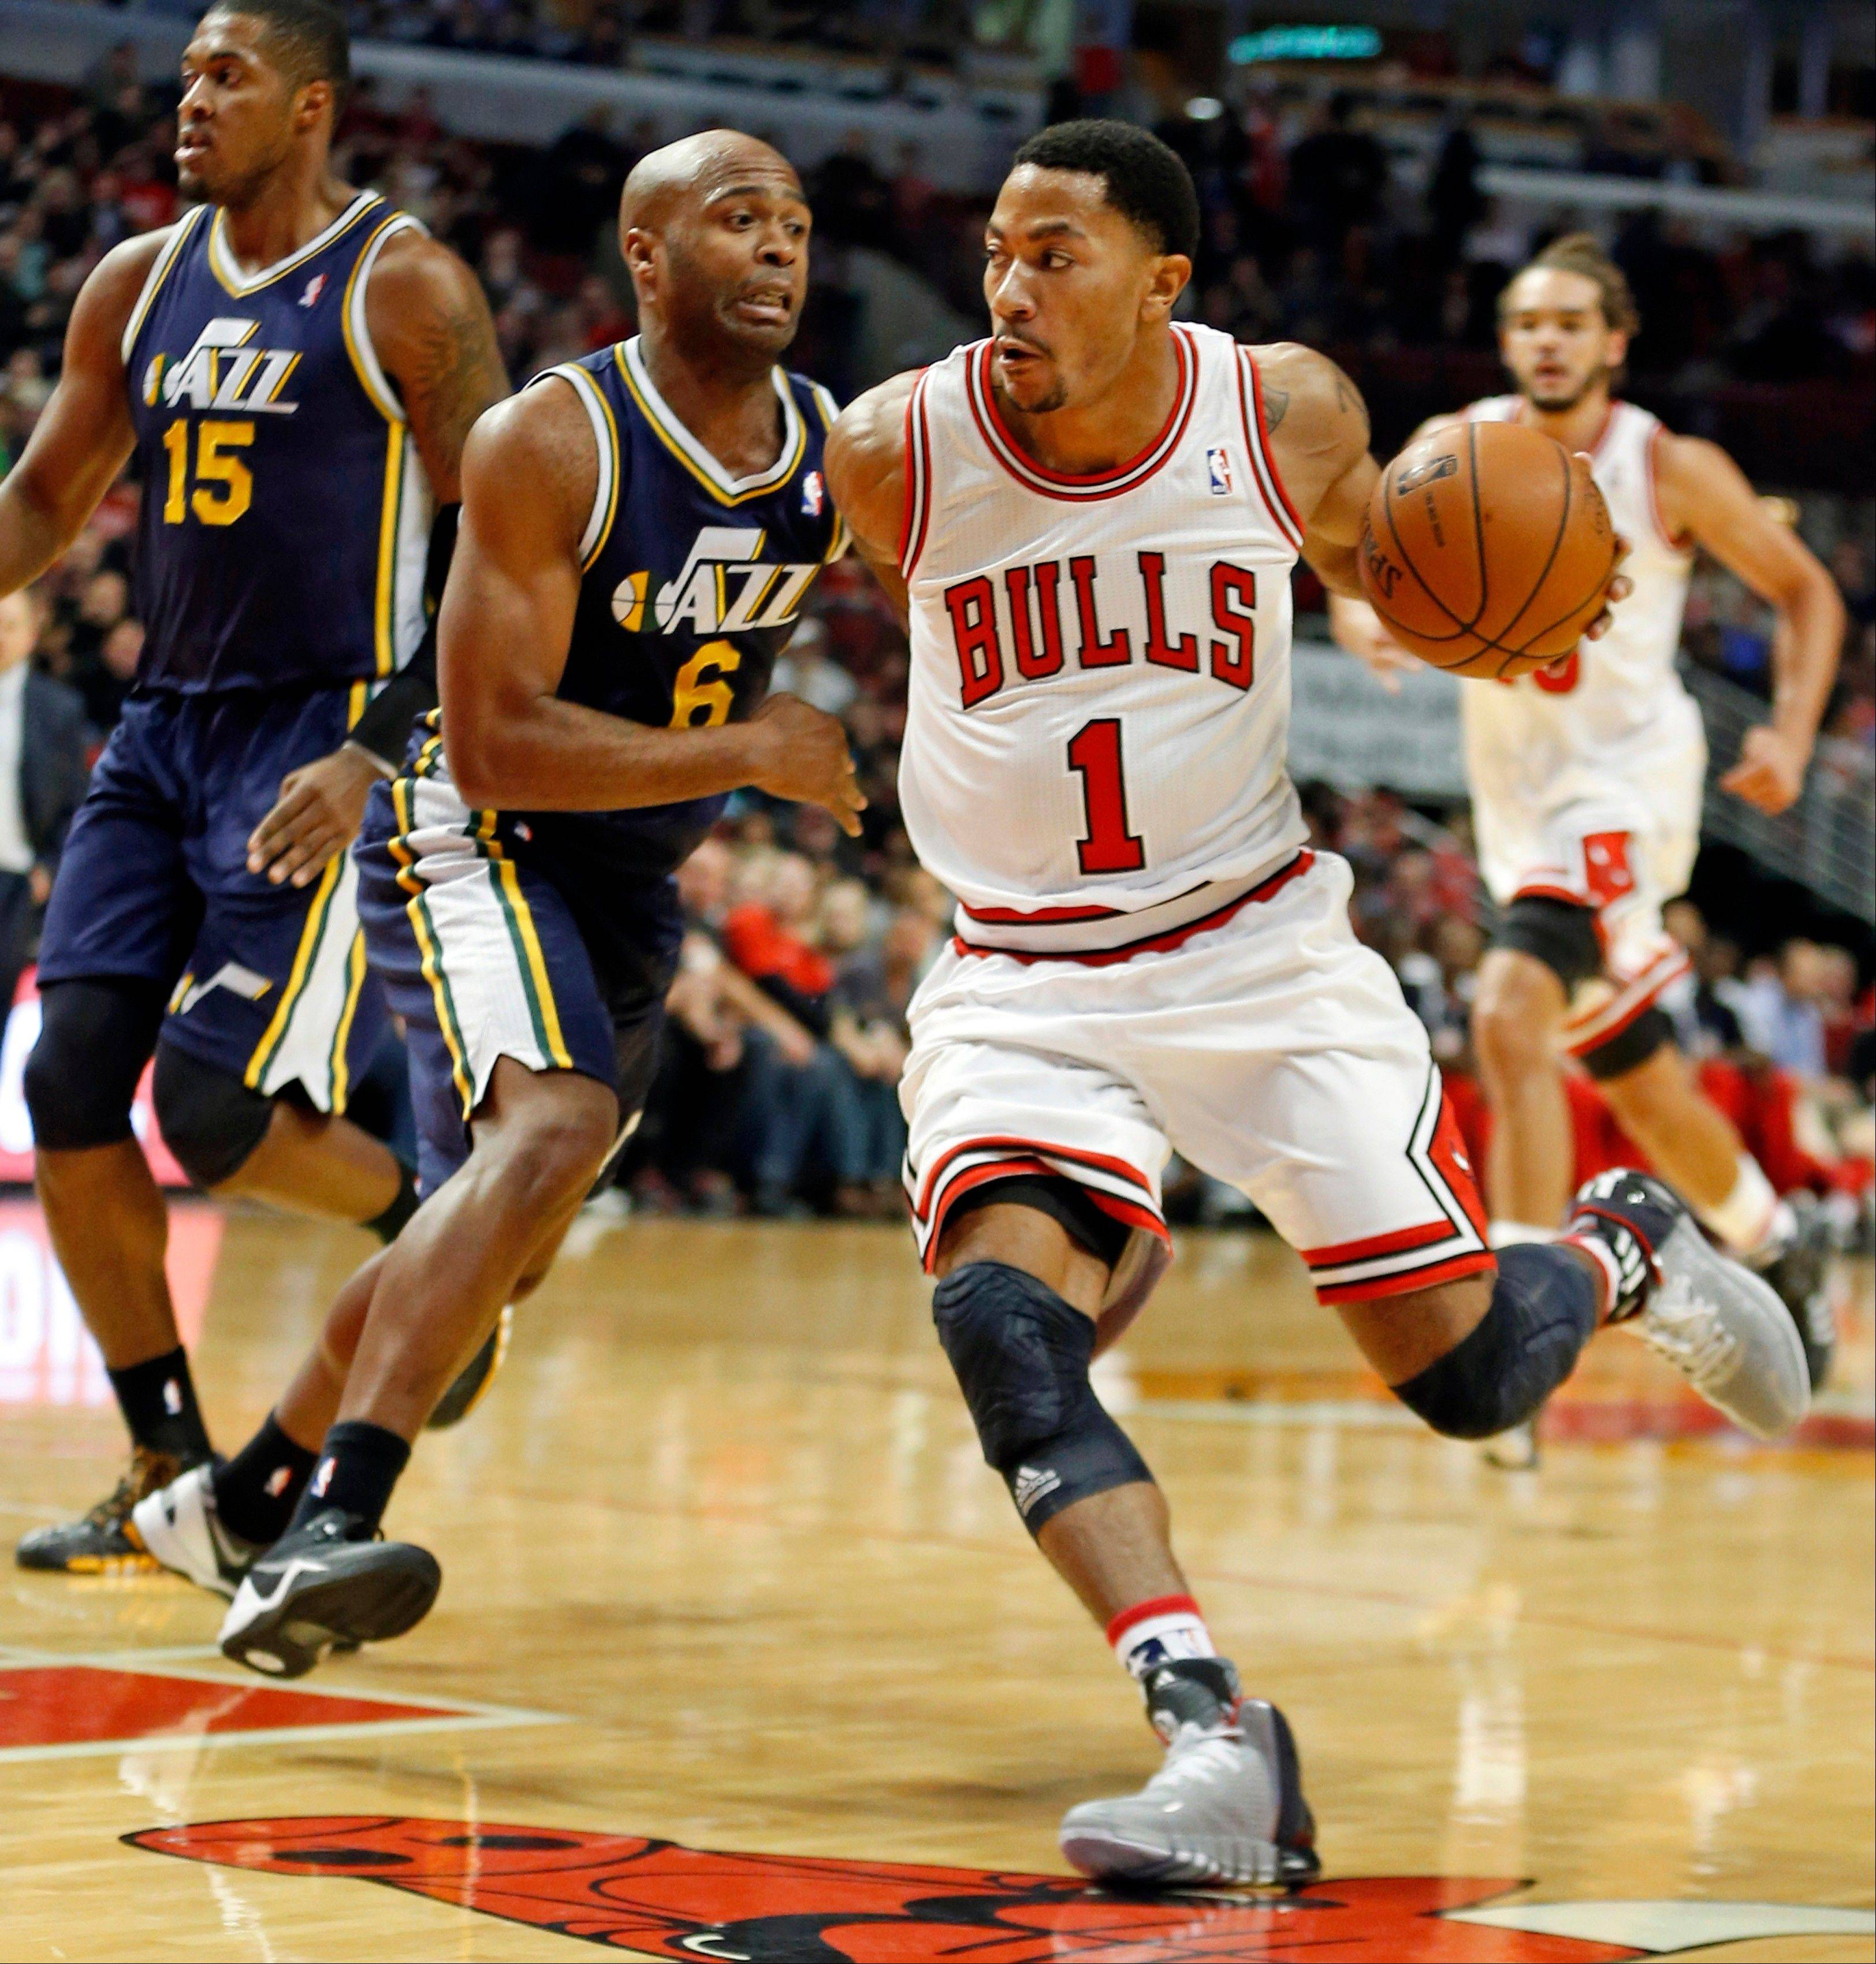 The Bulls' Derrick Rose leads the NBA with 5 turnovers per game.